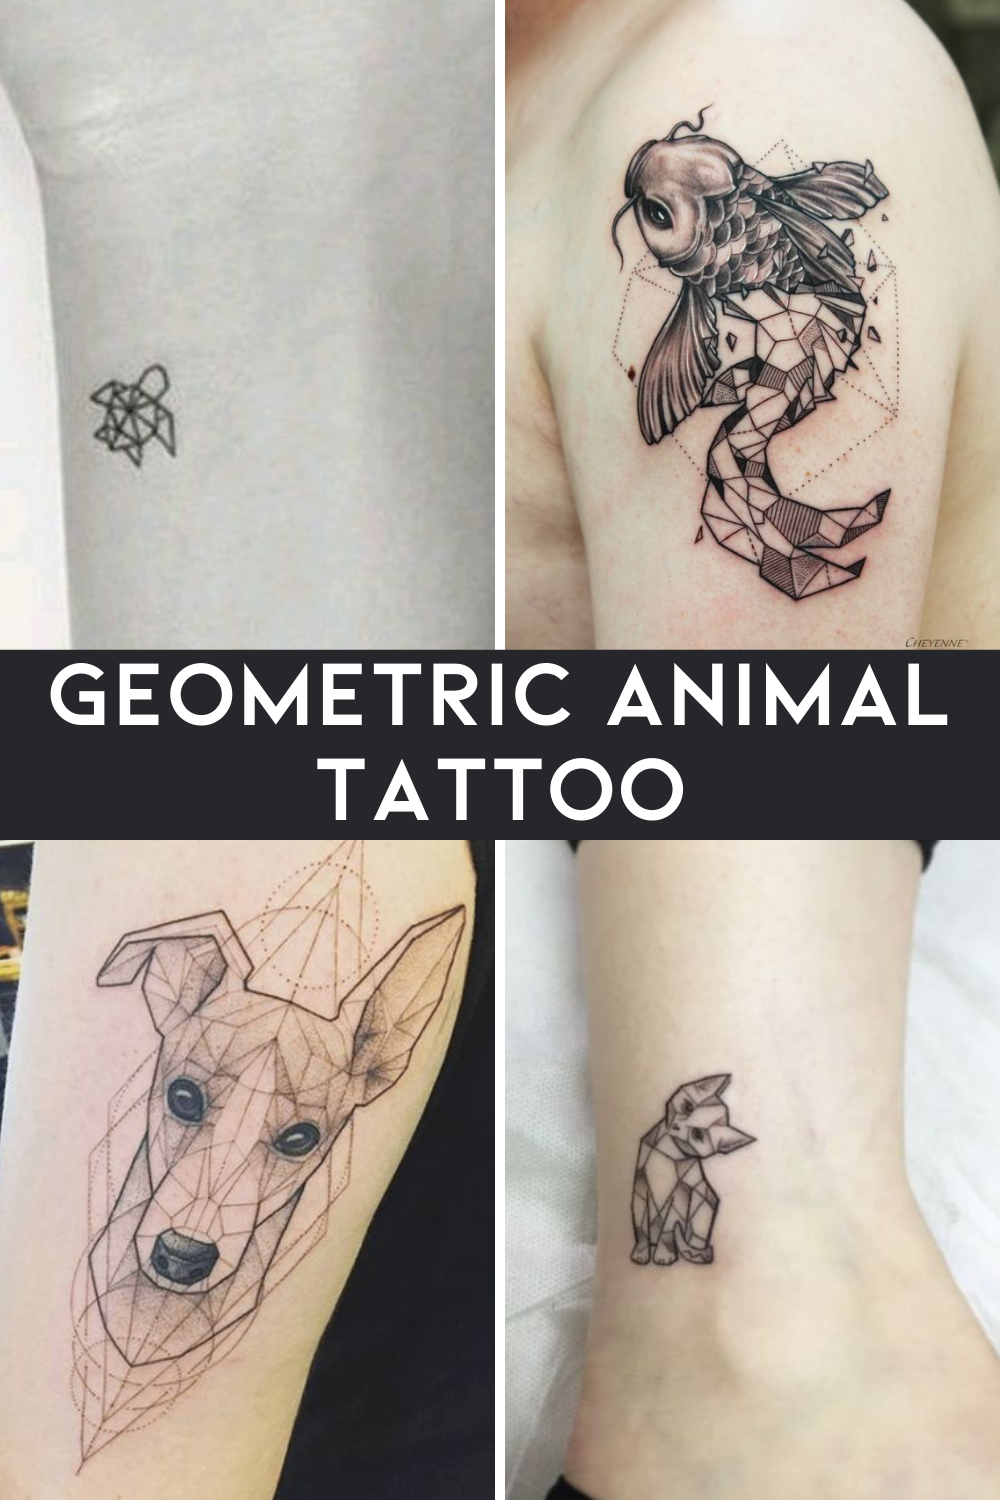 Small Geometric Animal Tattoo Ideas That Look Cute Anywhere